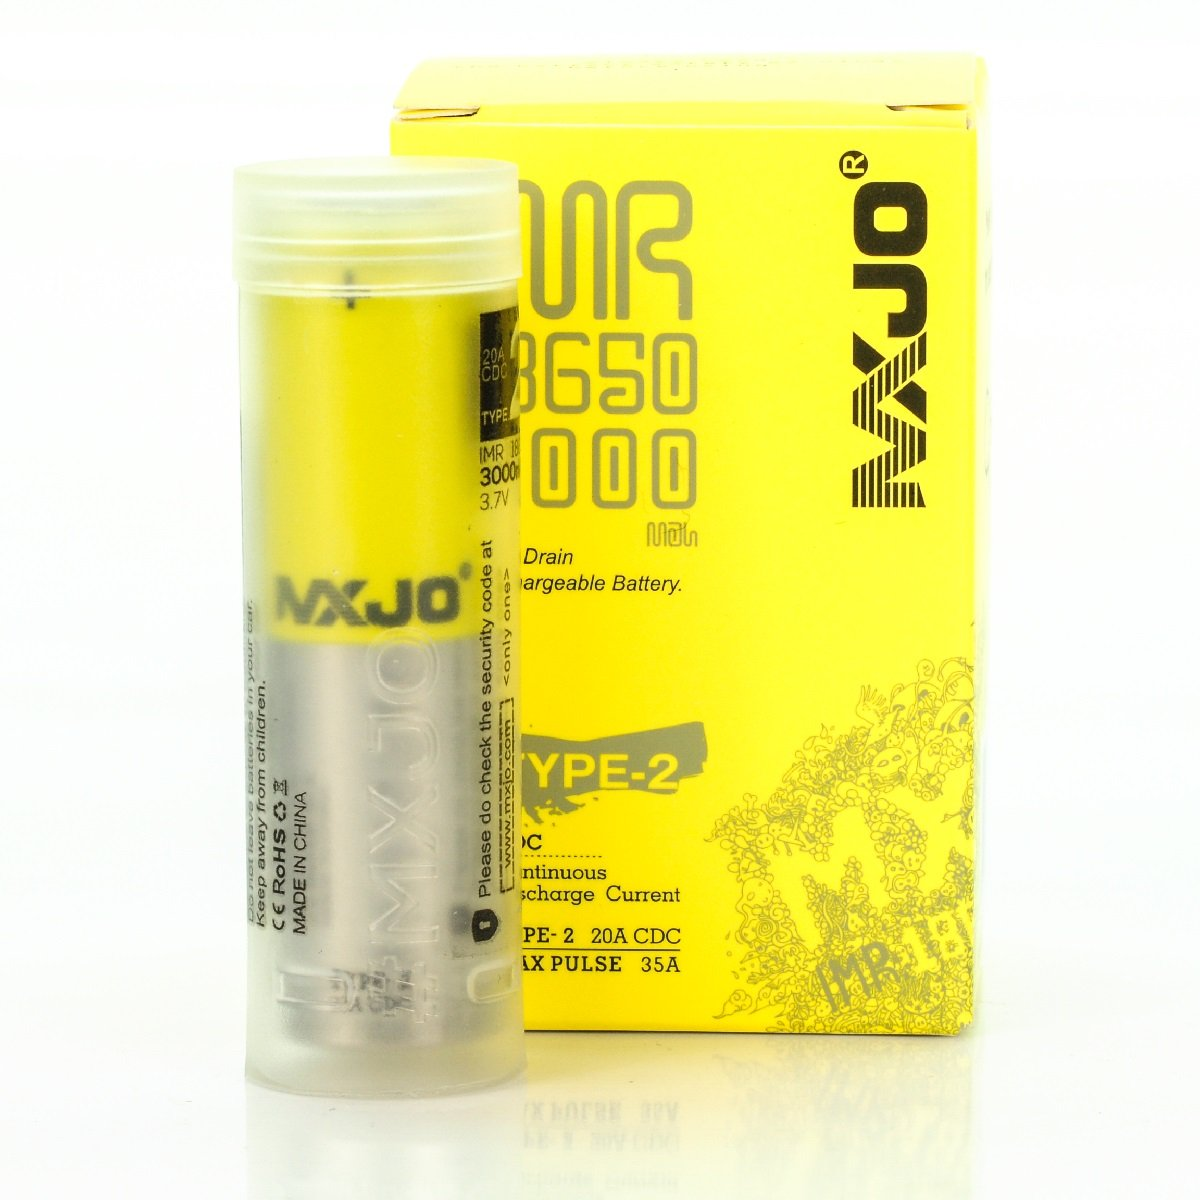 MXJO IMR 18650 3000MAH 35A 3.7V FT authentic original flat top high drain battery batteries by V Force MXJO 18650 3000 mAh 35A